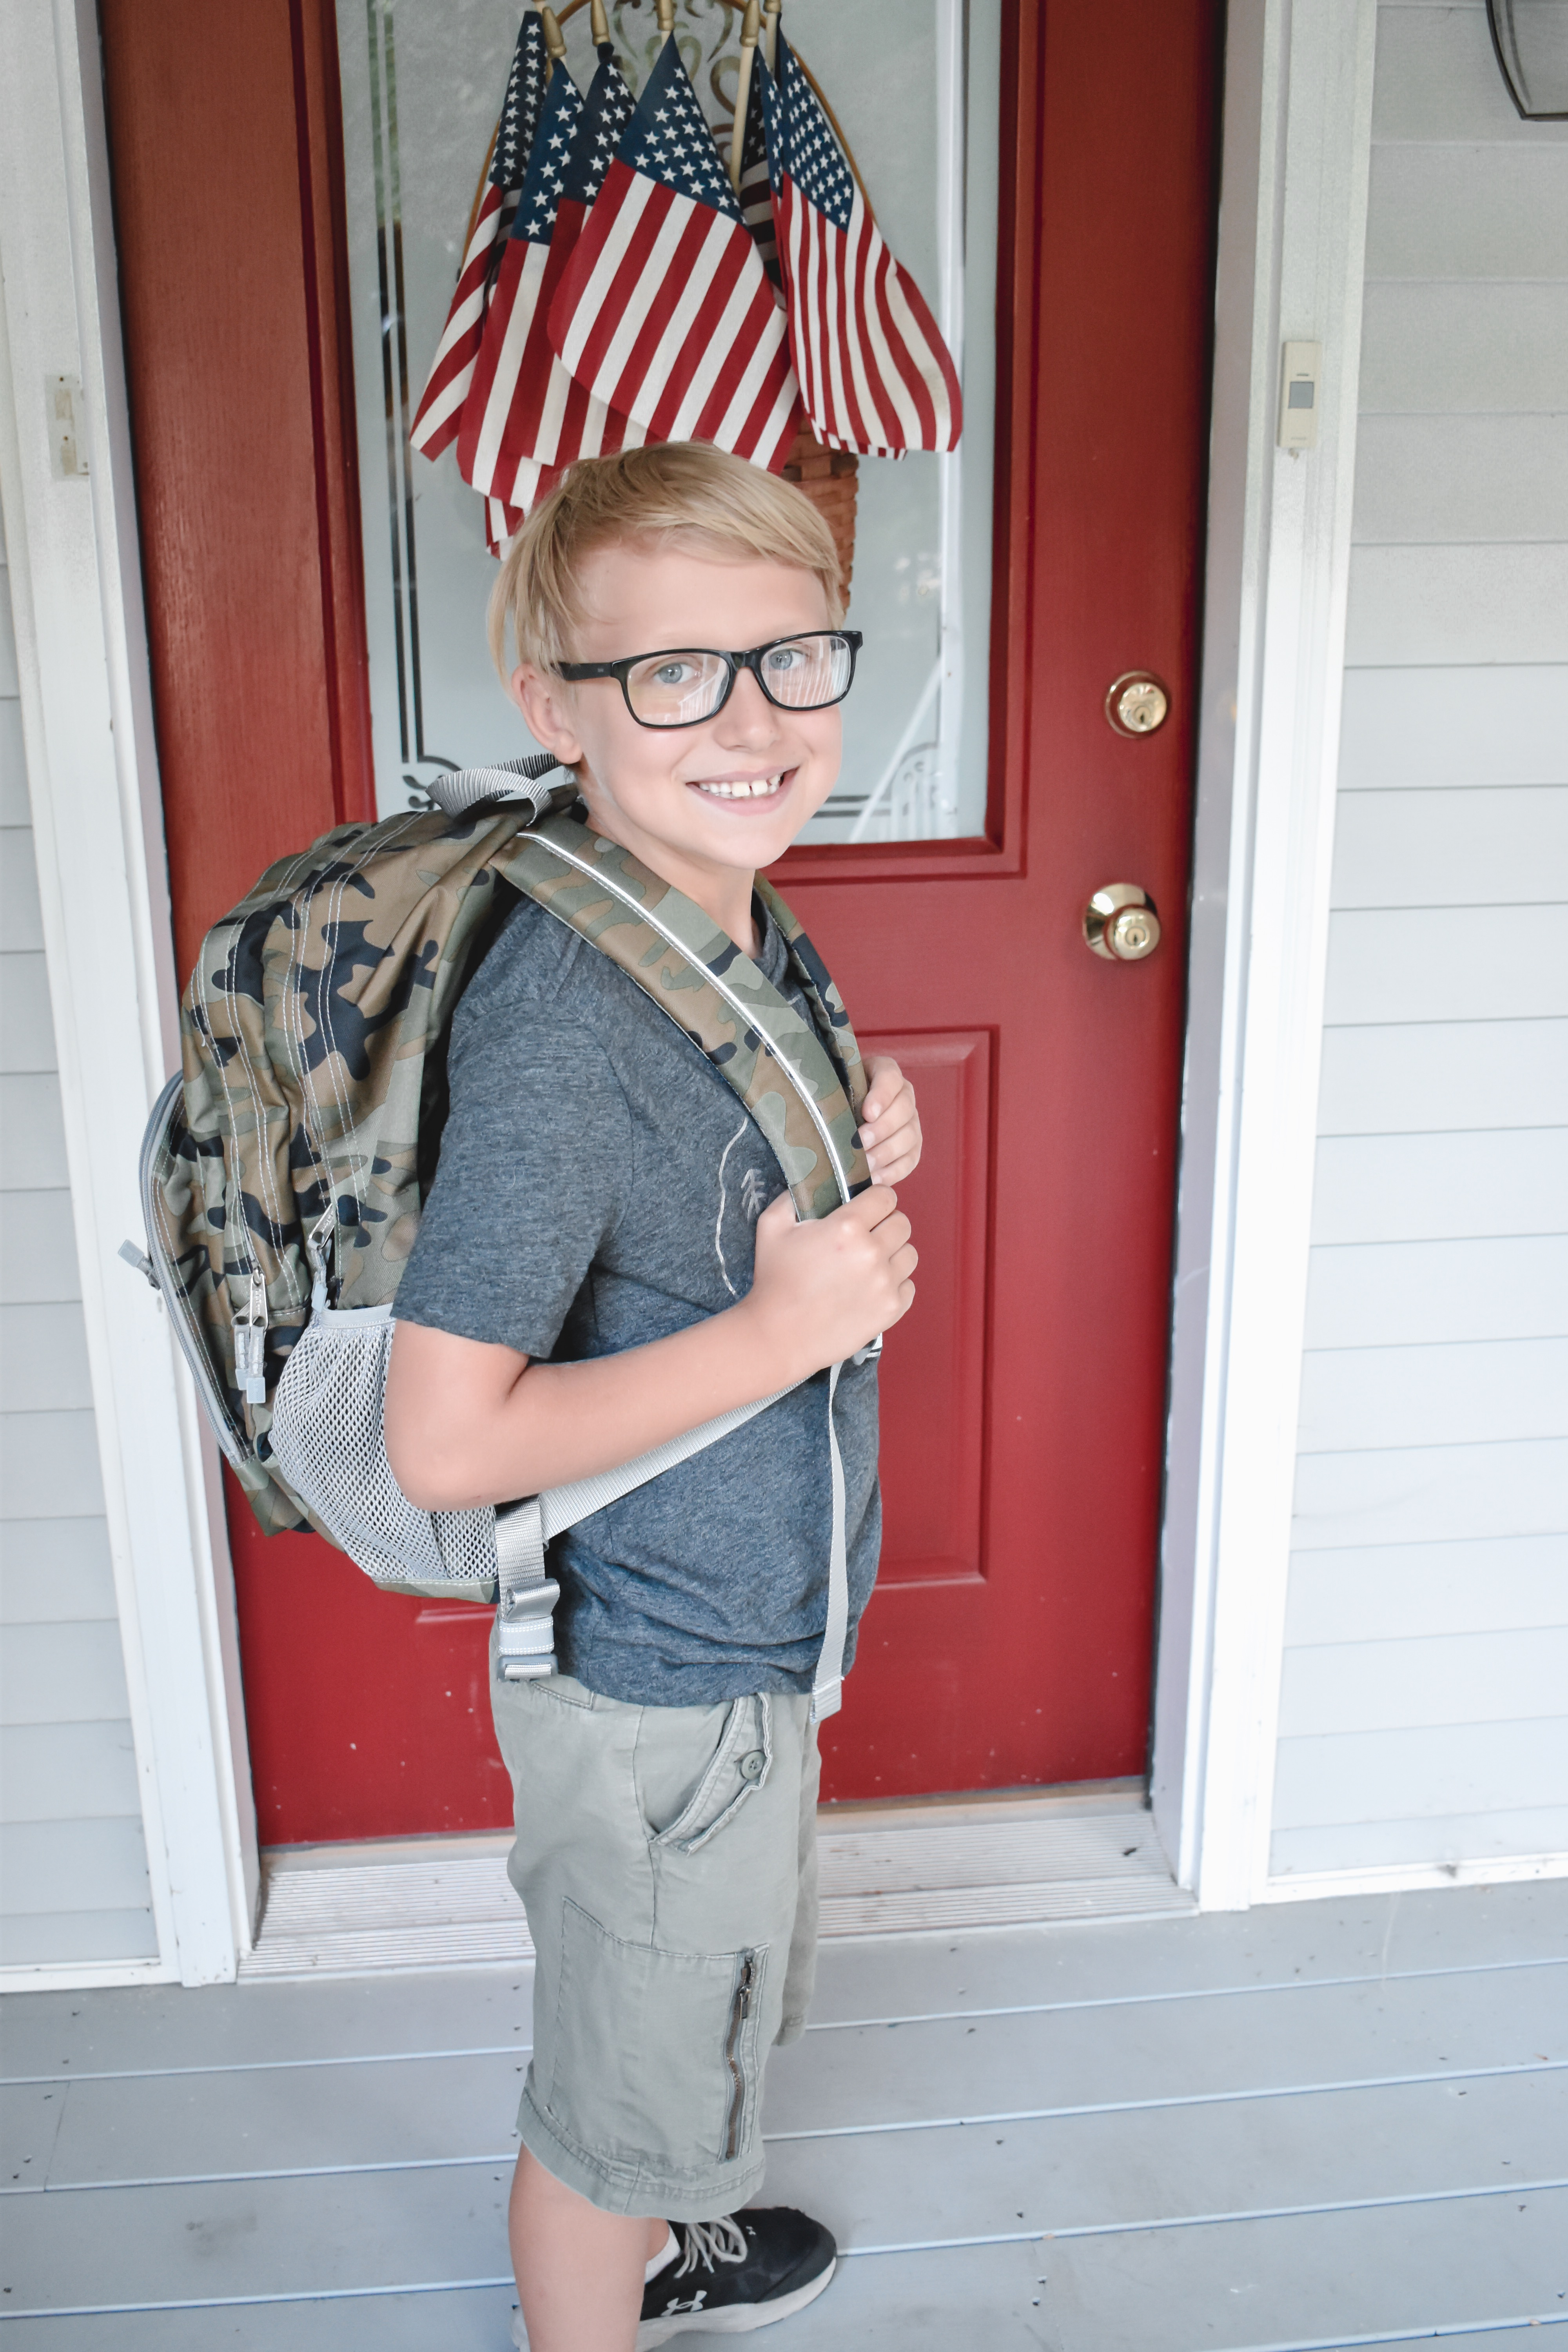 Looking for what the back to school essentials are for your kids this school year? Check out this list for back to school items every kid needs. | back to school | School essentials | School year | School |